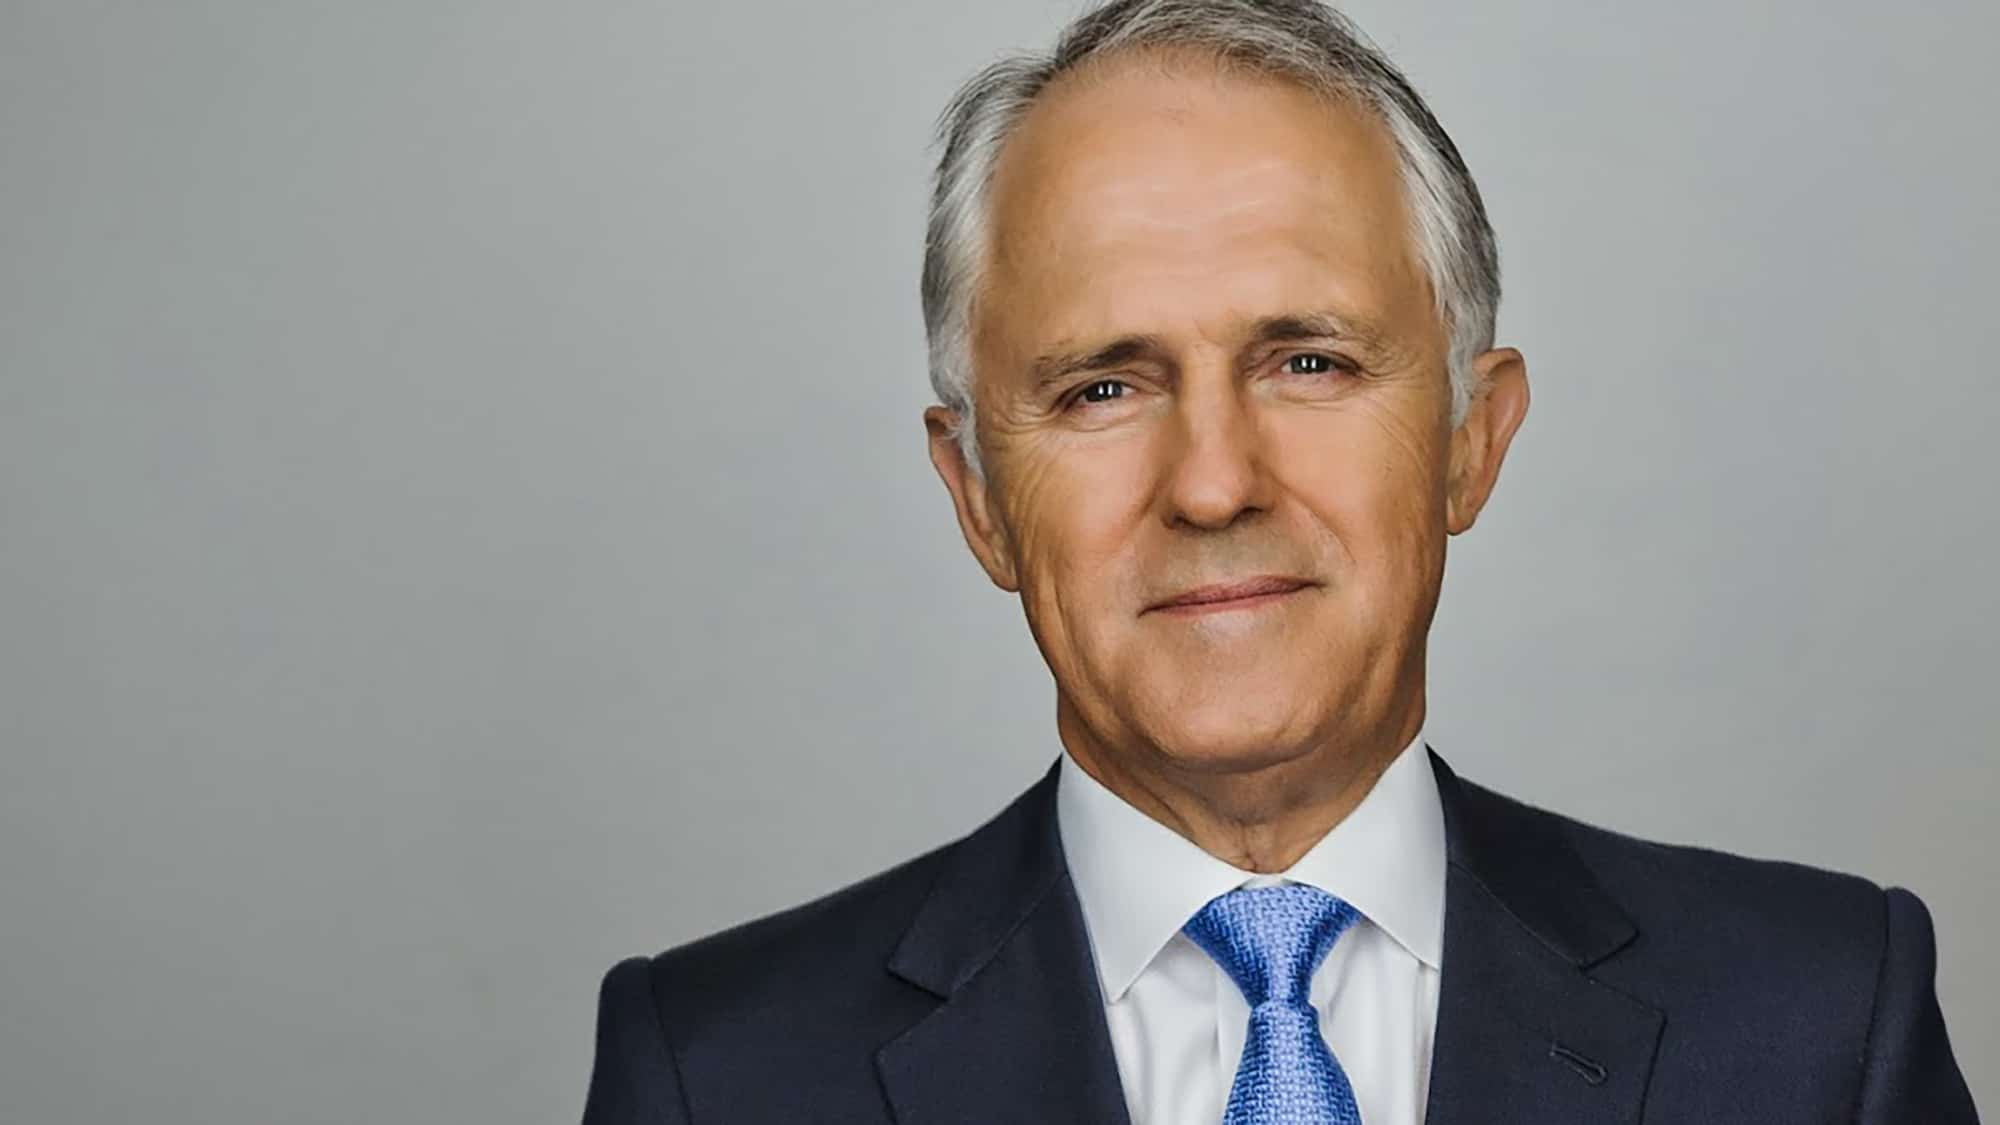 Former Australian Prime Minister Malcolm Turnbull Appointed Director